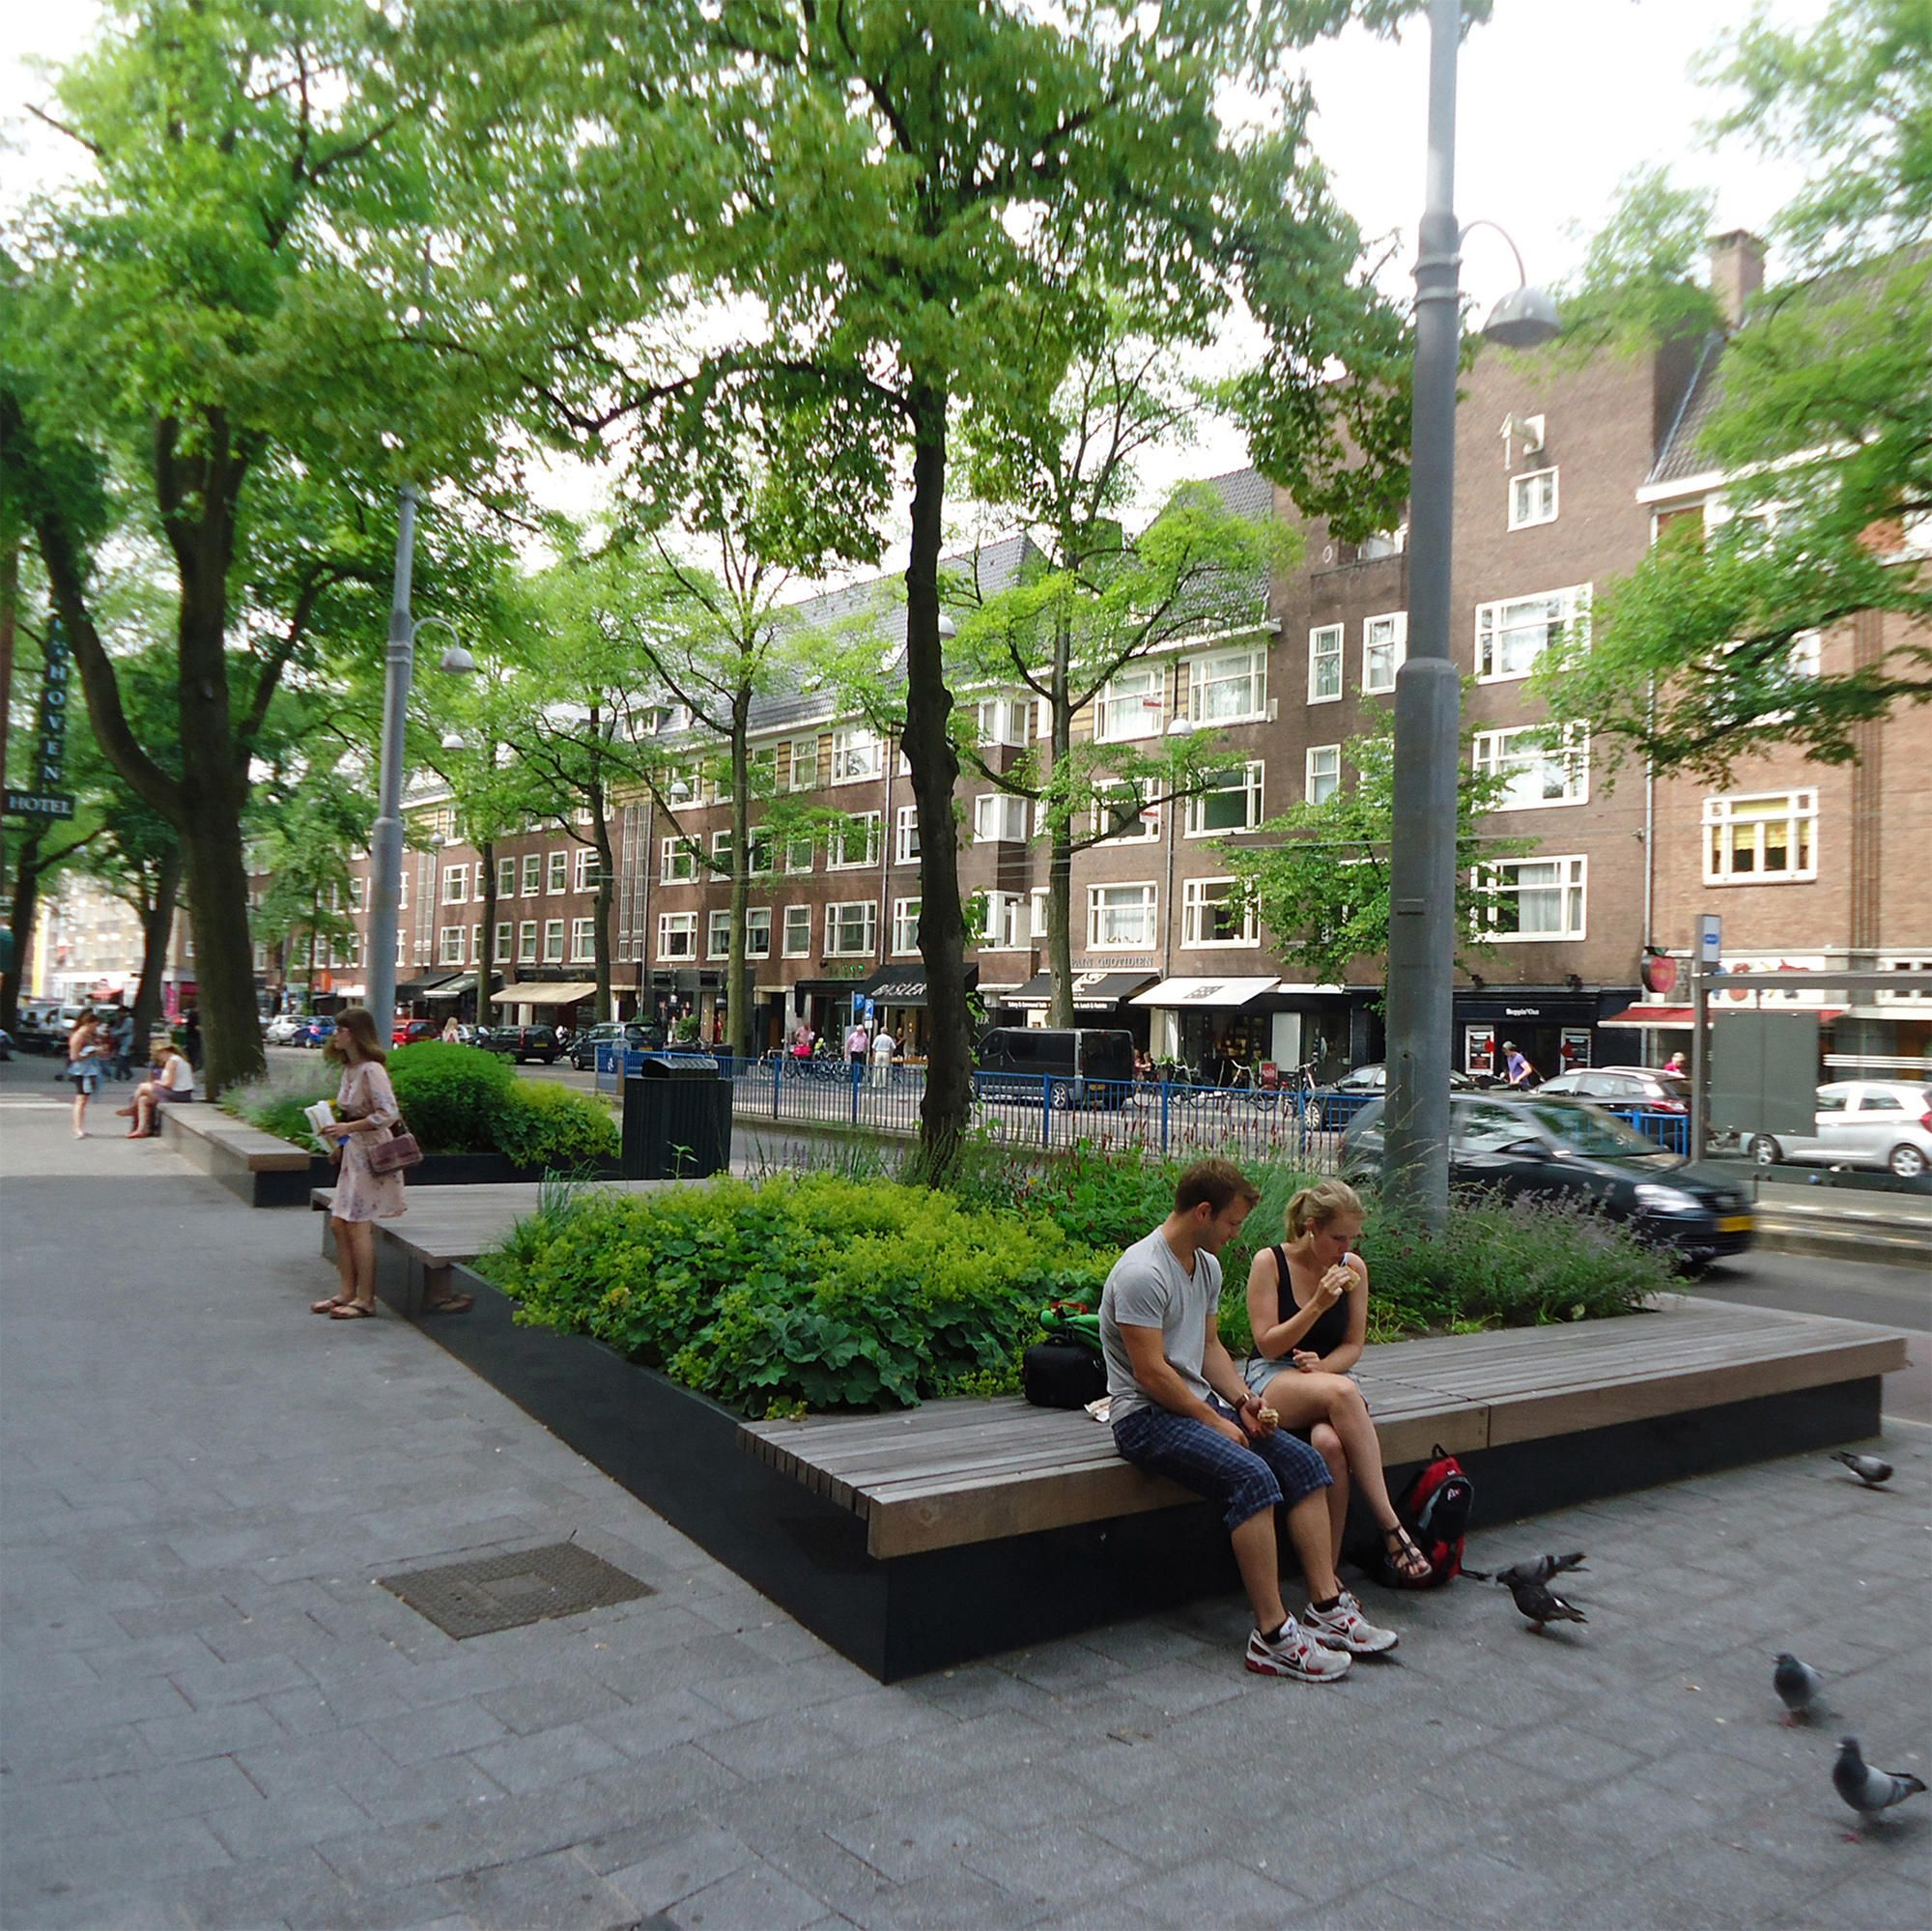 55 Small Urban Garden Design Ideas And Pictures: SOLID LONG GREEN BENCHES